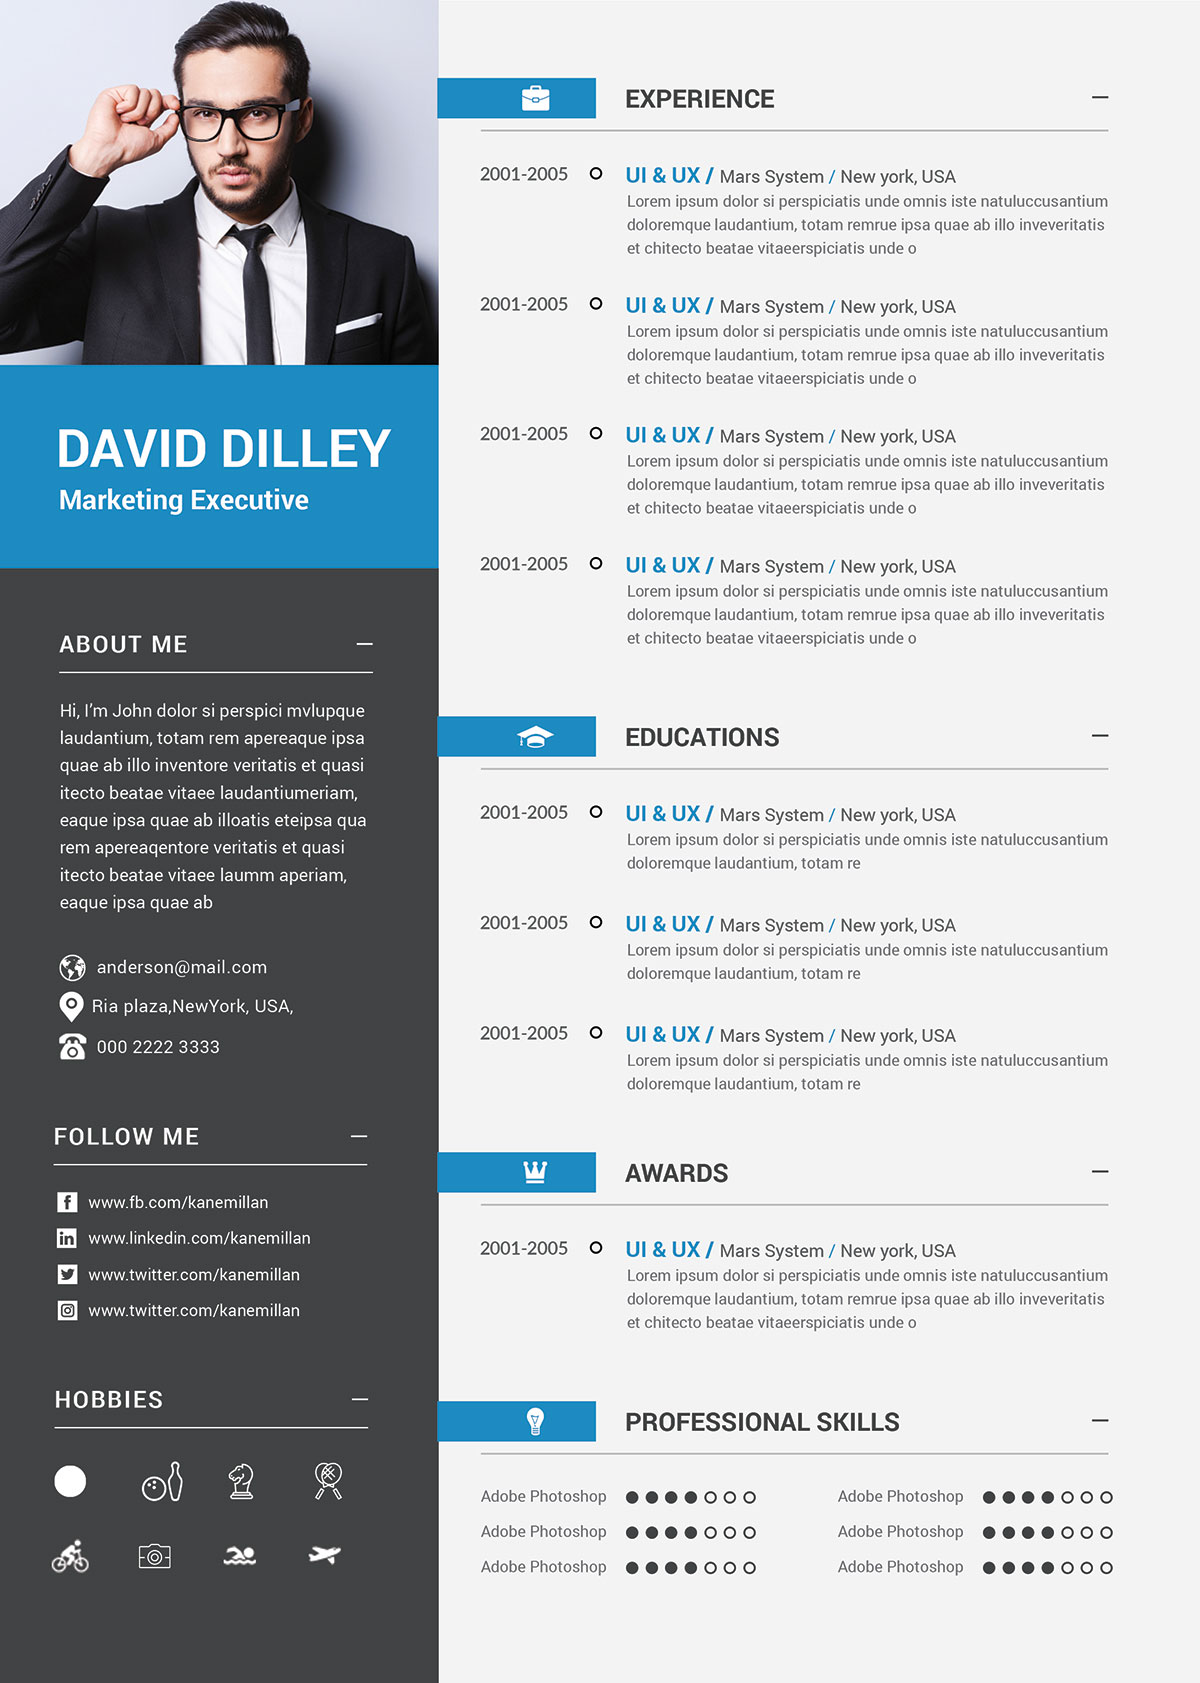 free professional cv template  u0026 cover letter for marketing executives